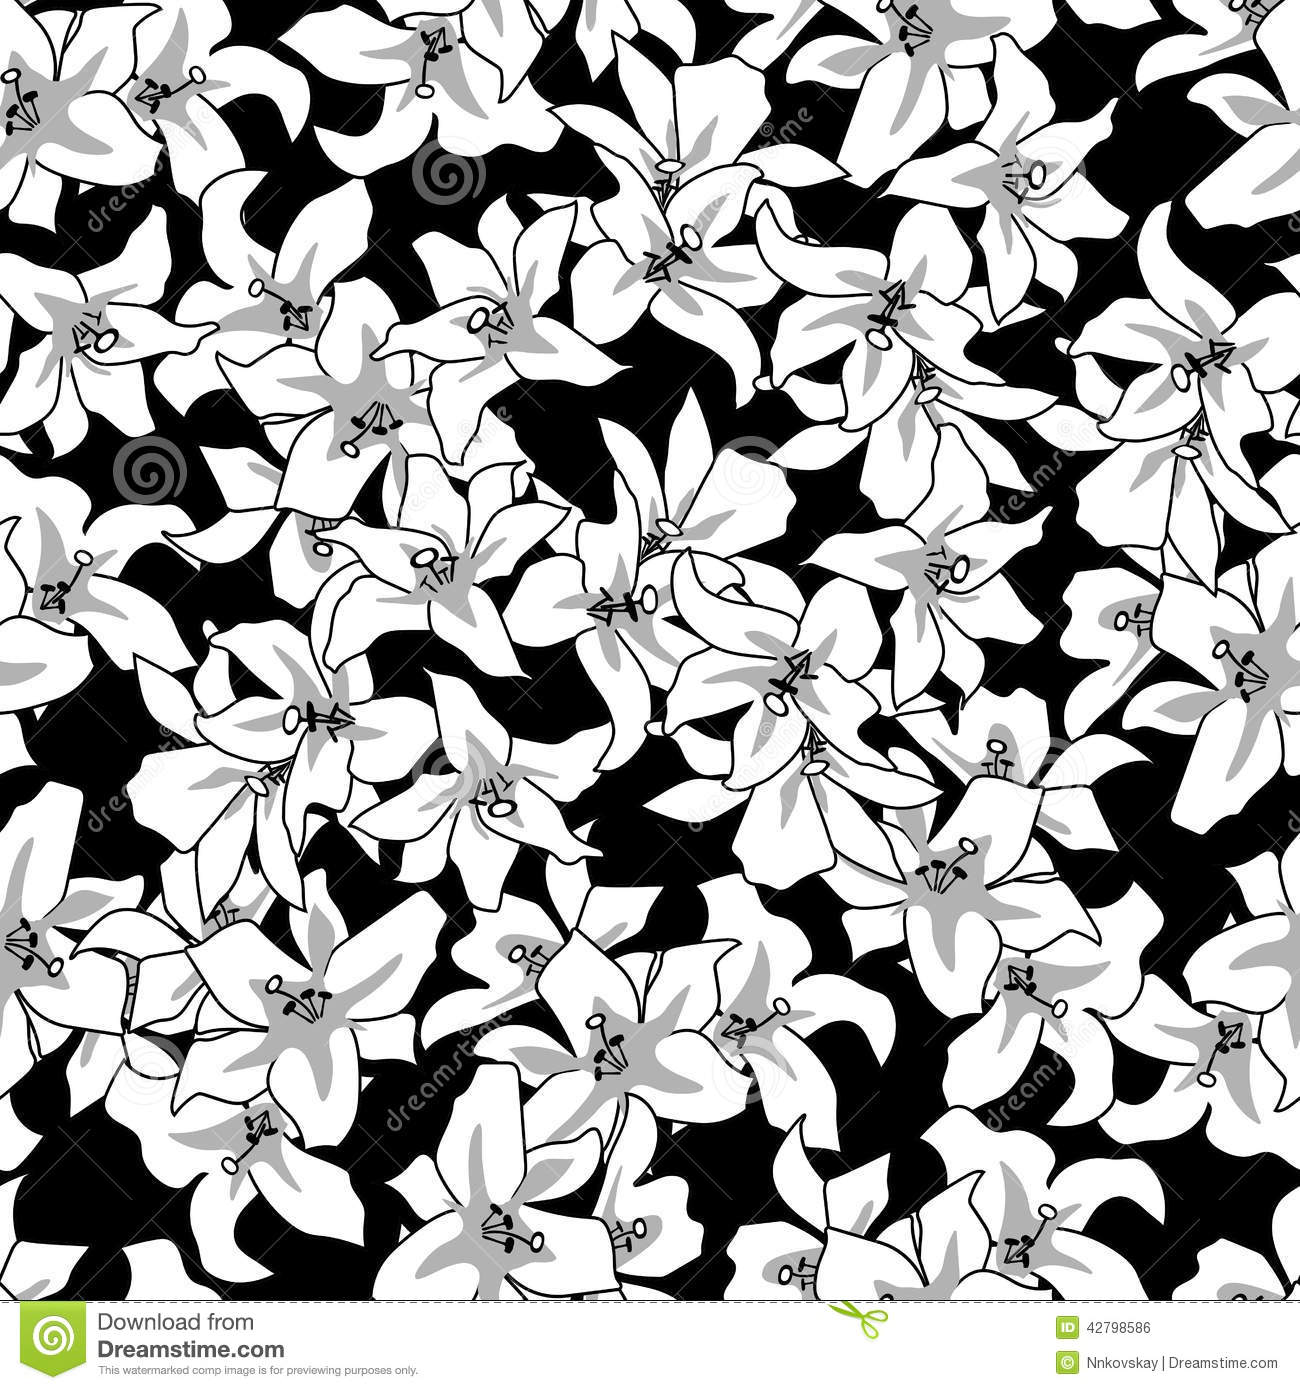 Floral Seamless Black White Pattern Stock Vector Illustration Of